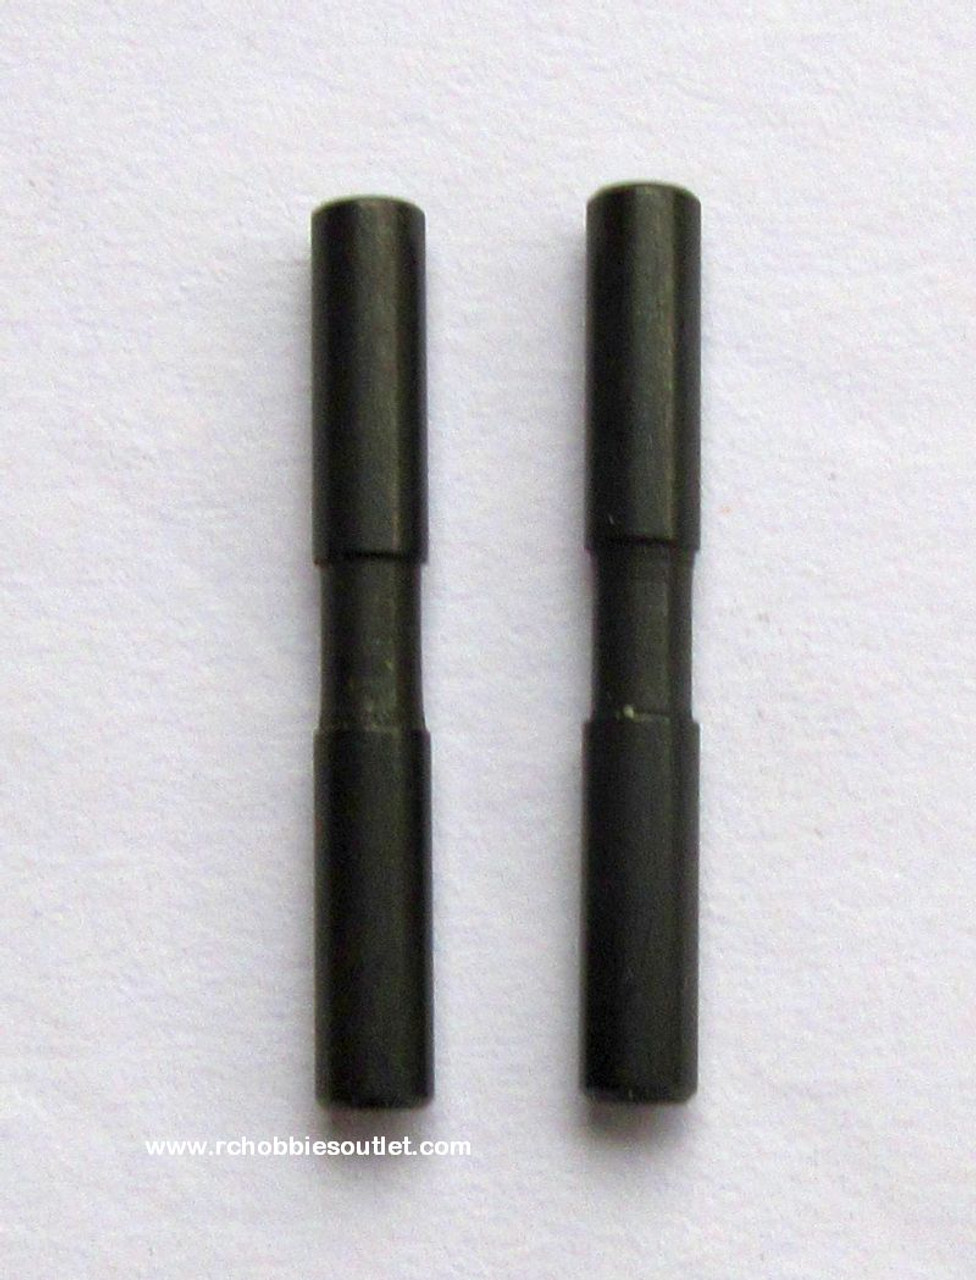 02061 Rear Lower Arm Hinge Pin B  1:10 Scale   ( 2 pieces) HSP, Redcat